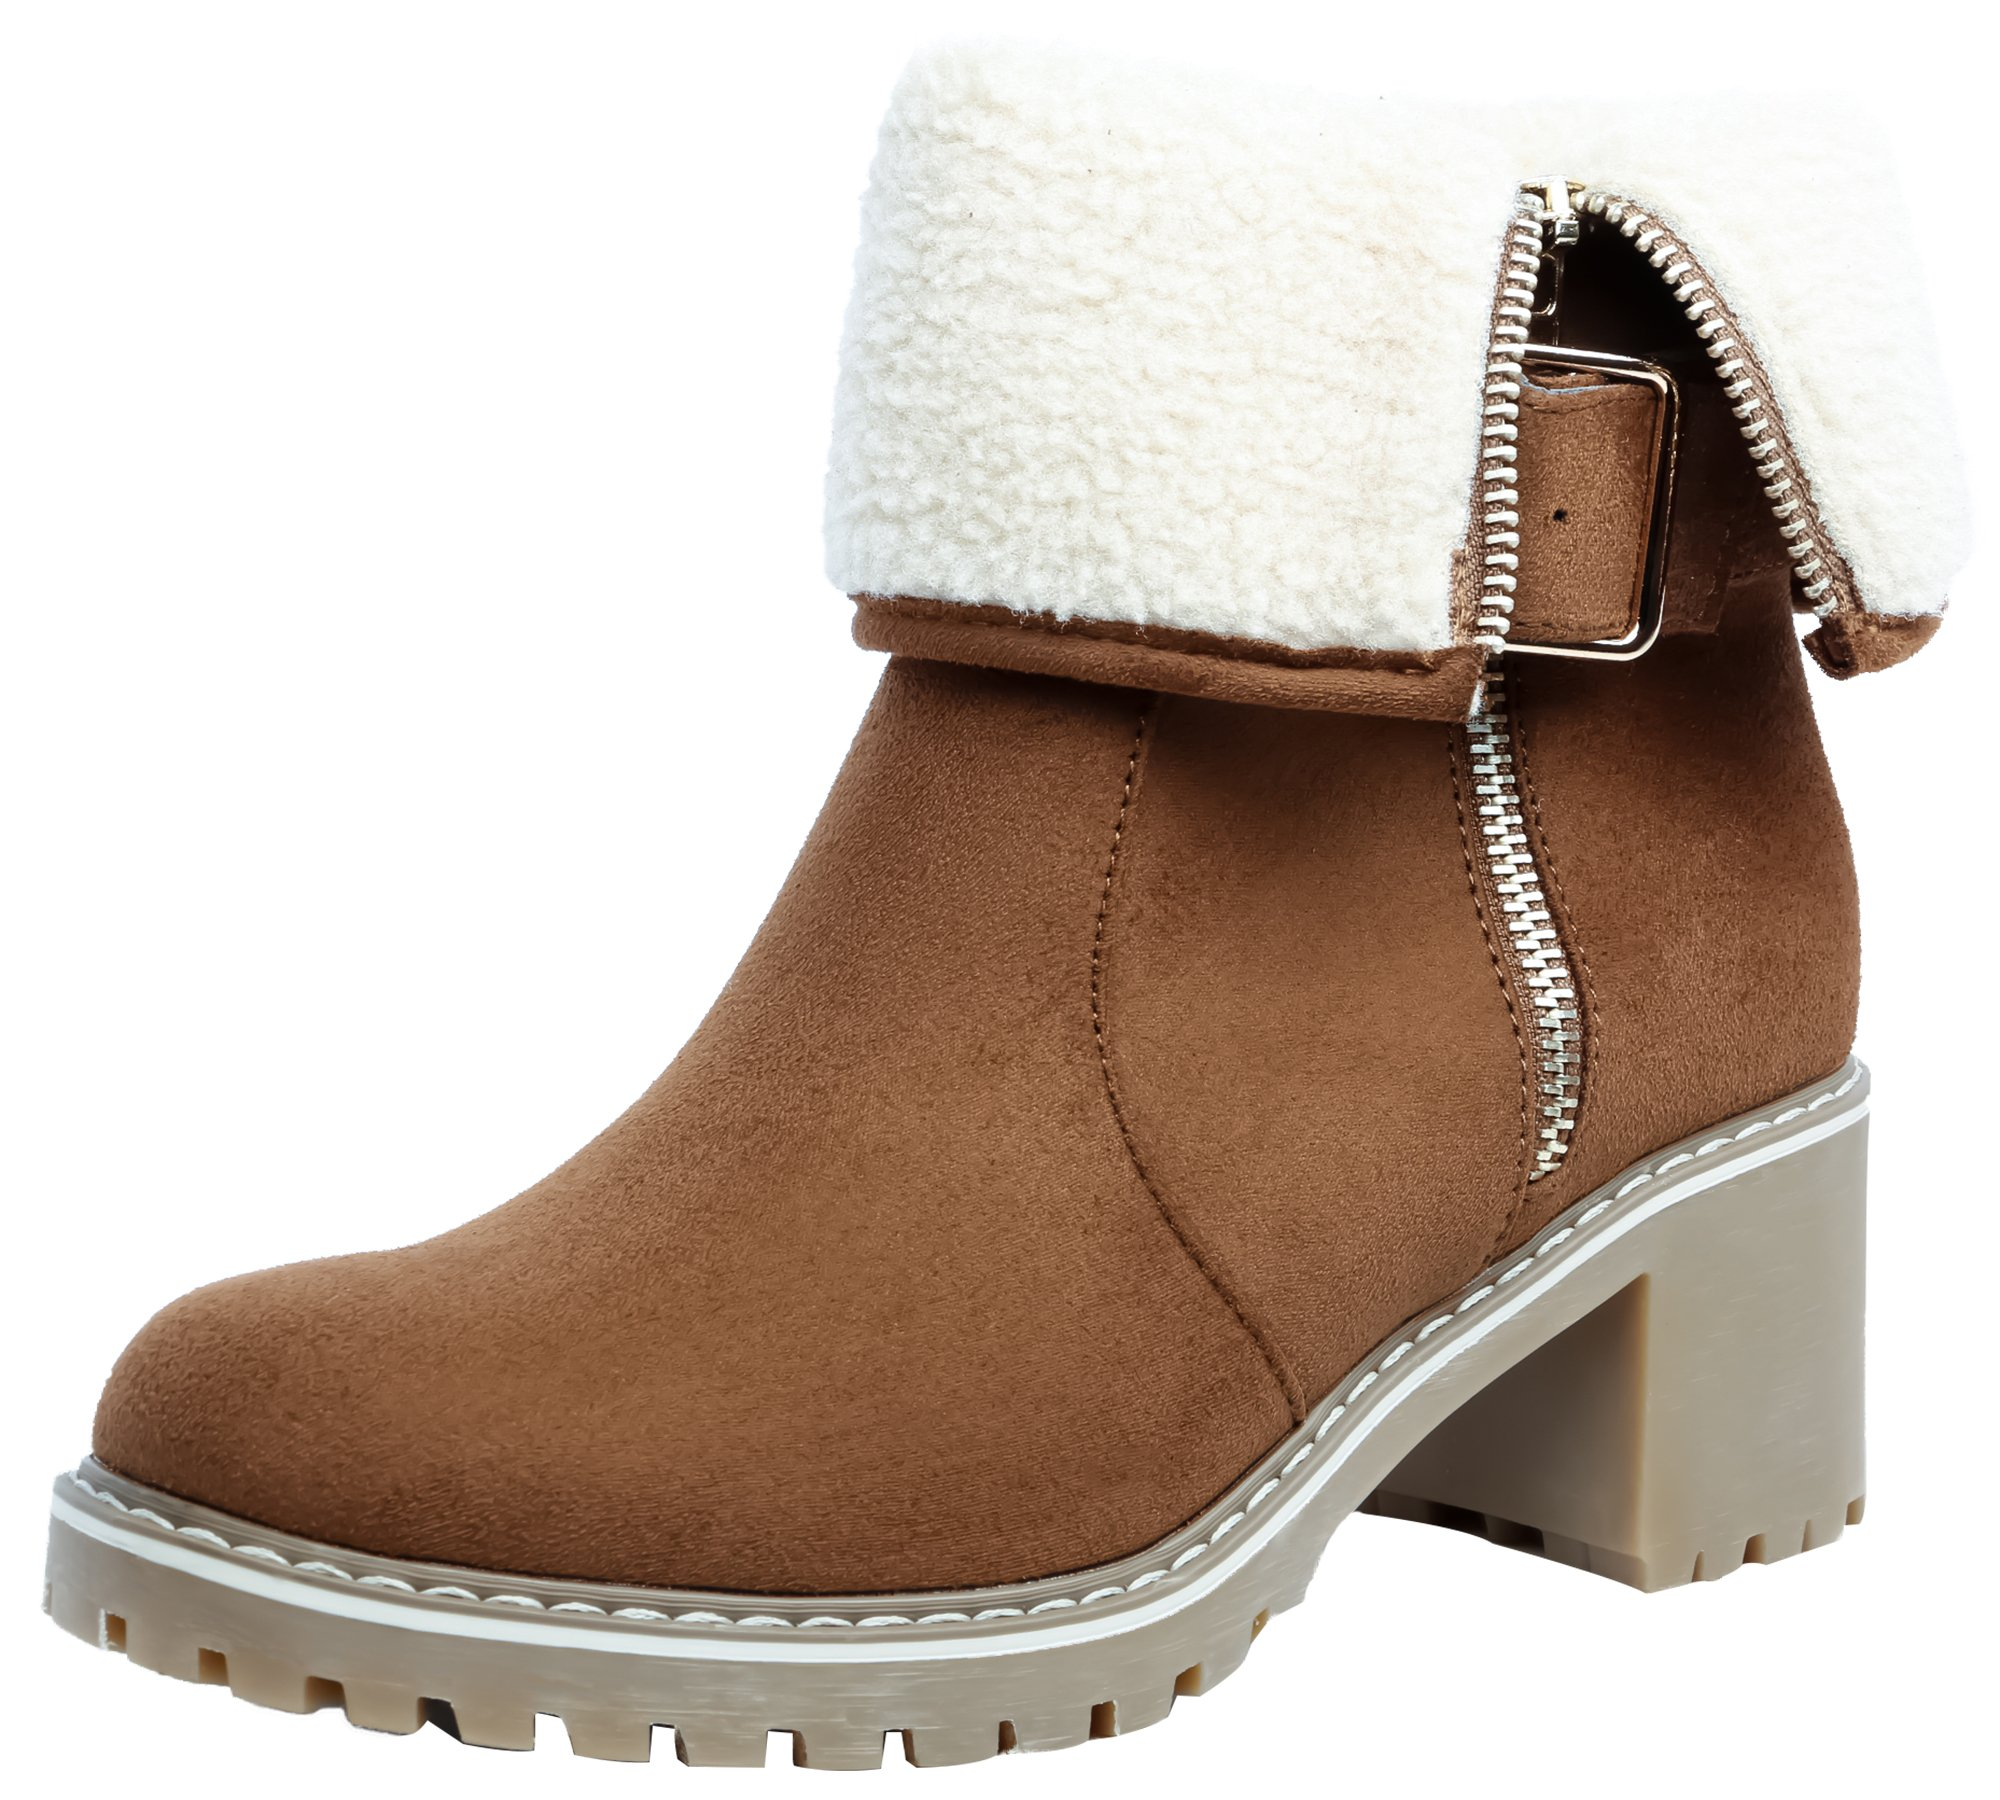 SHENBO Women's Winter Boots Fold Faux Shearling Trim Ankle Bootie(8,Camel)